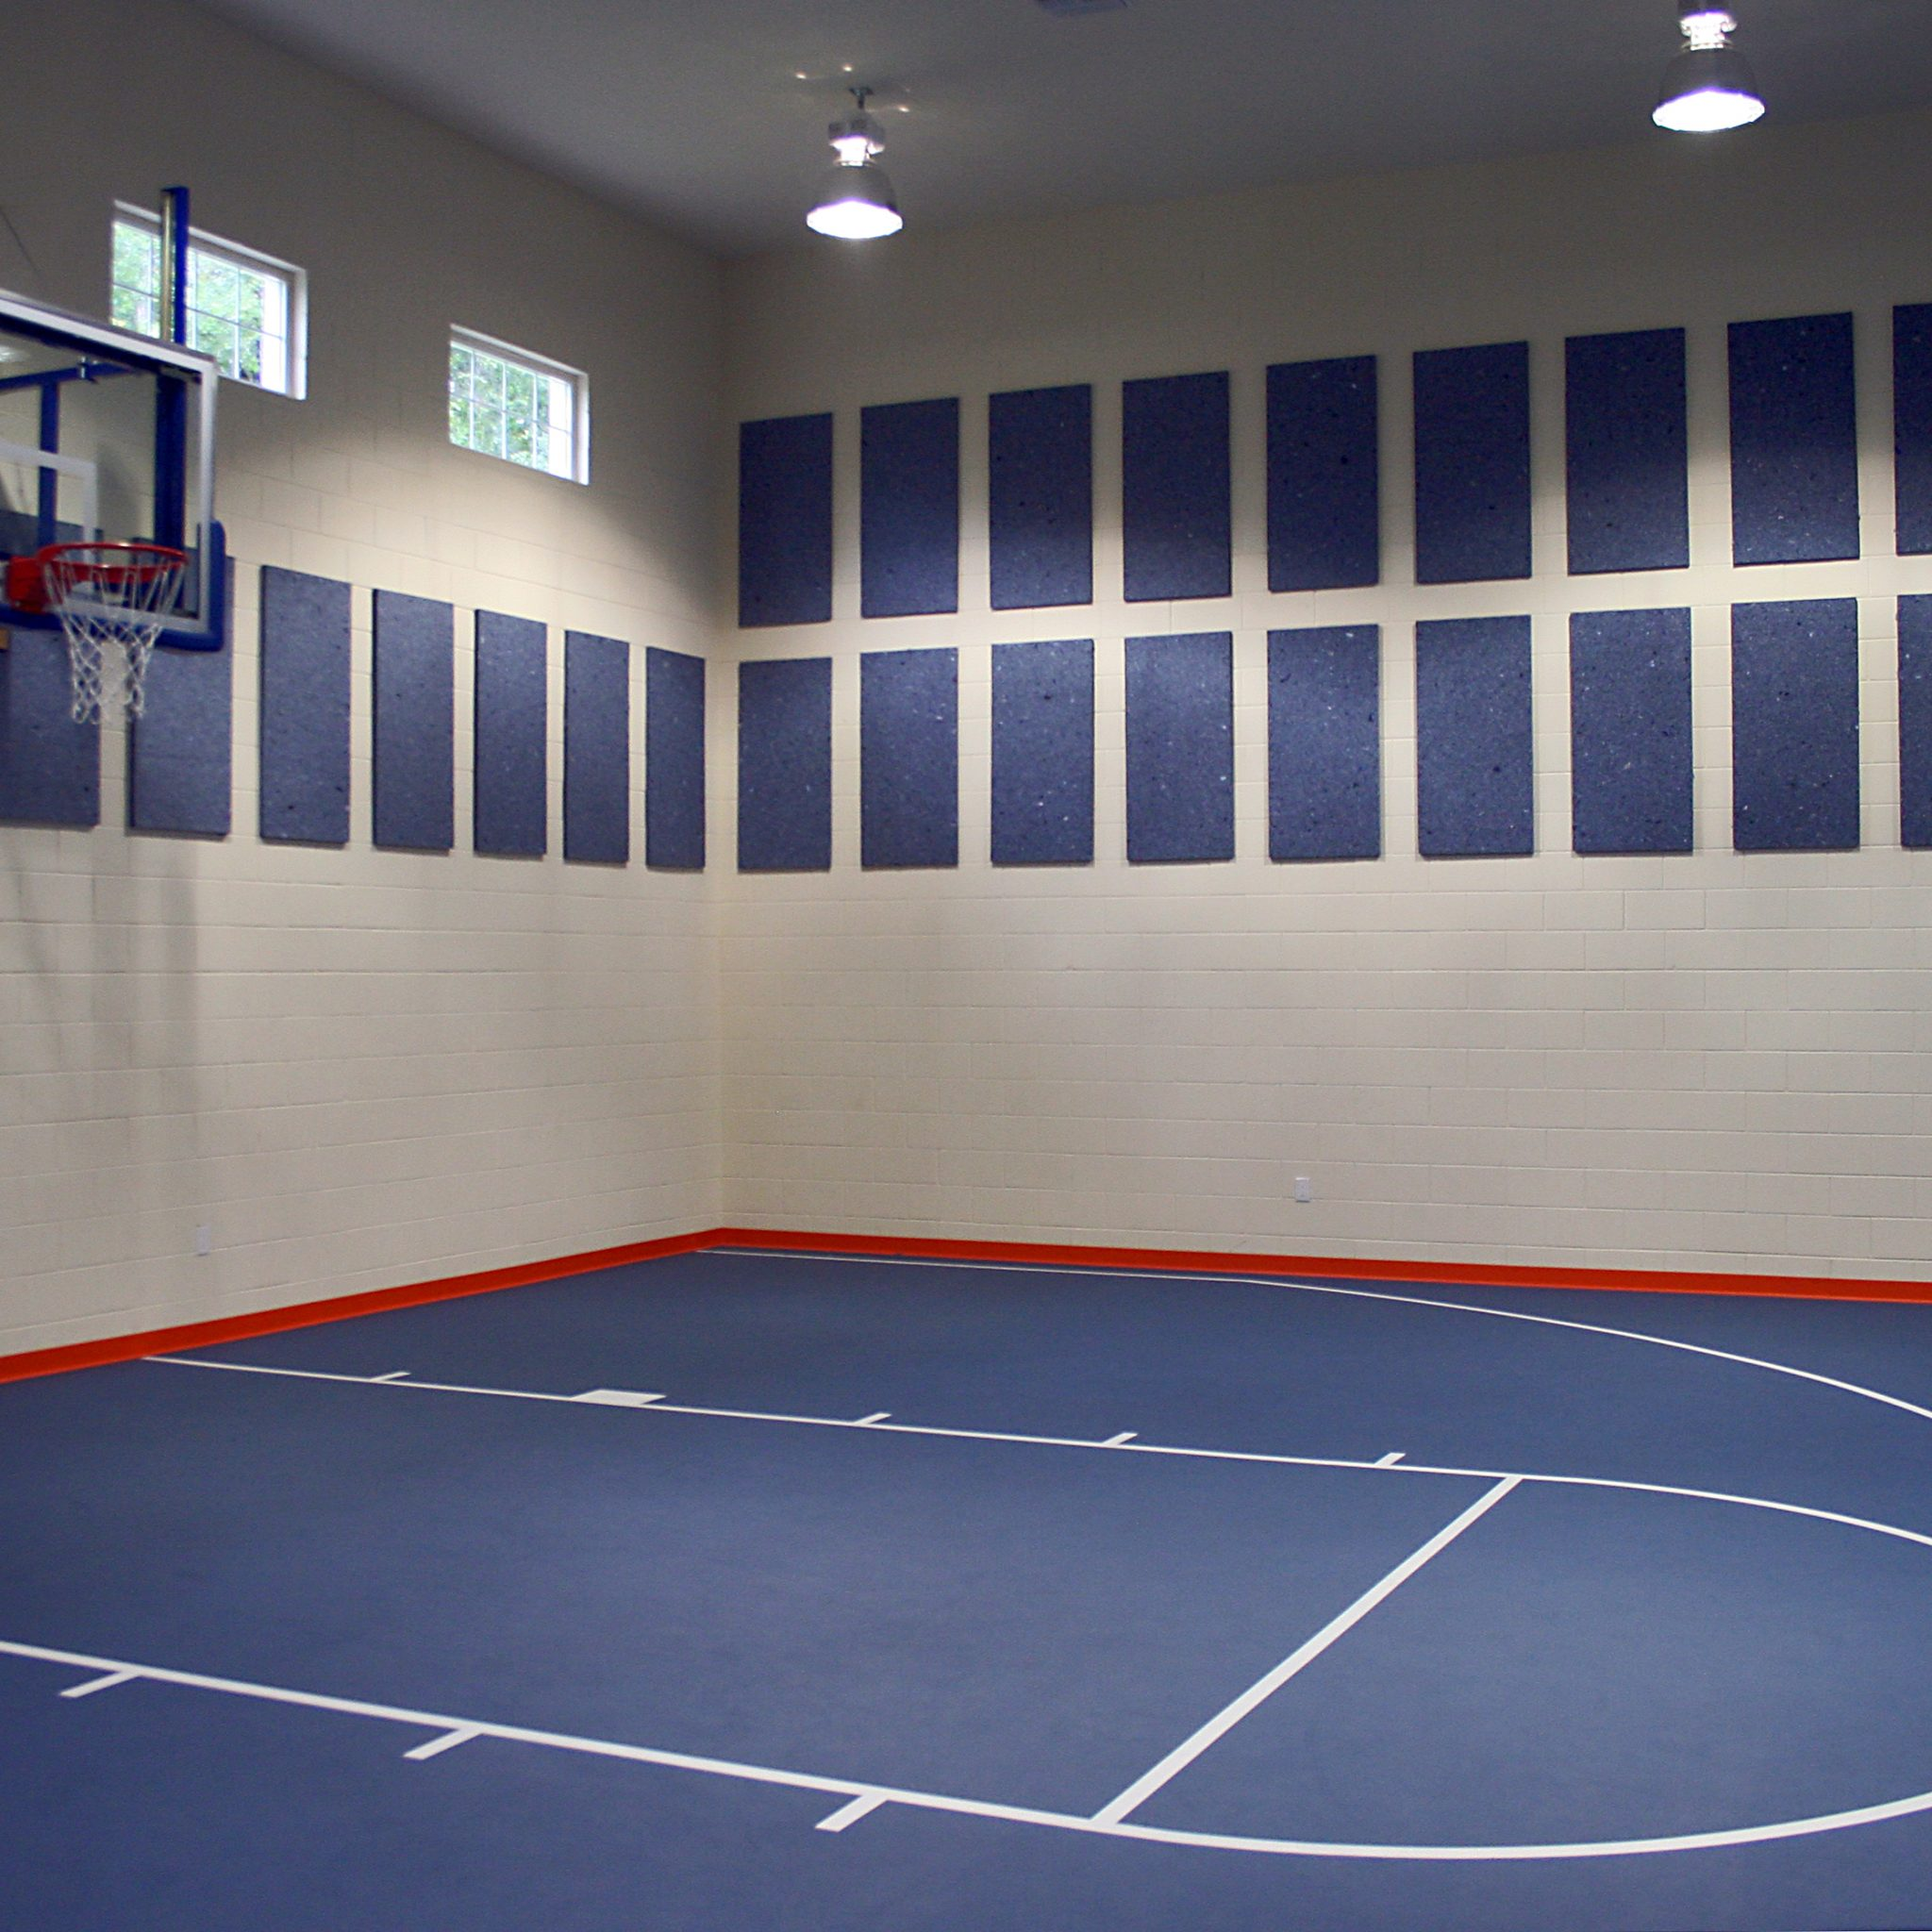 EcoSorpt® Cotton Acoustic Panels Installed On The Walls Of This  Multipurpose Room Gymnasium As An